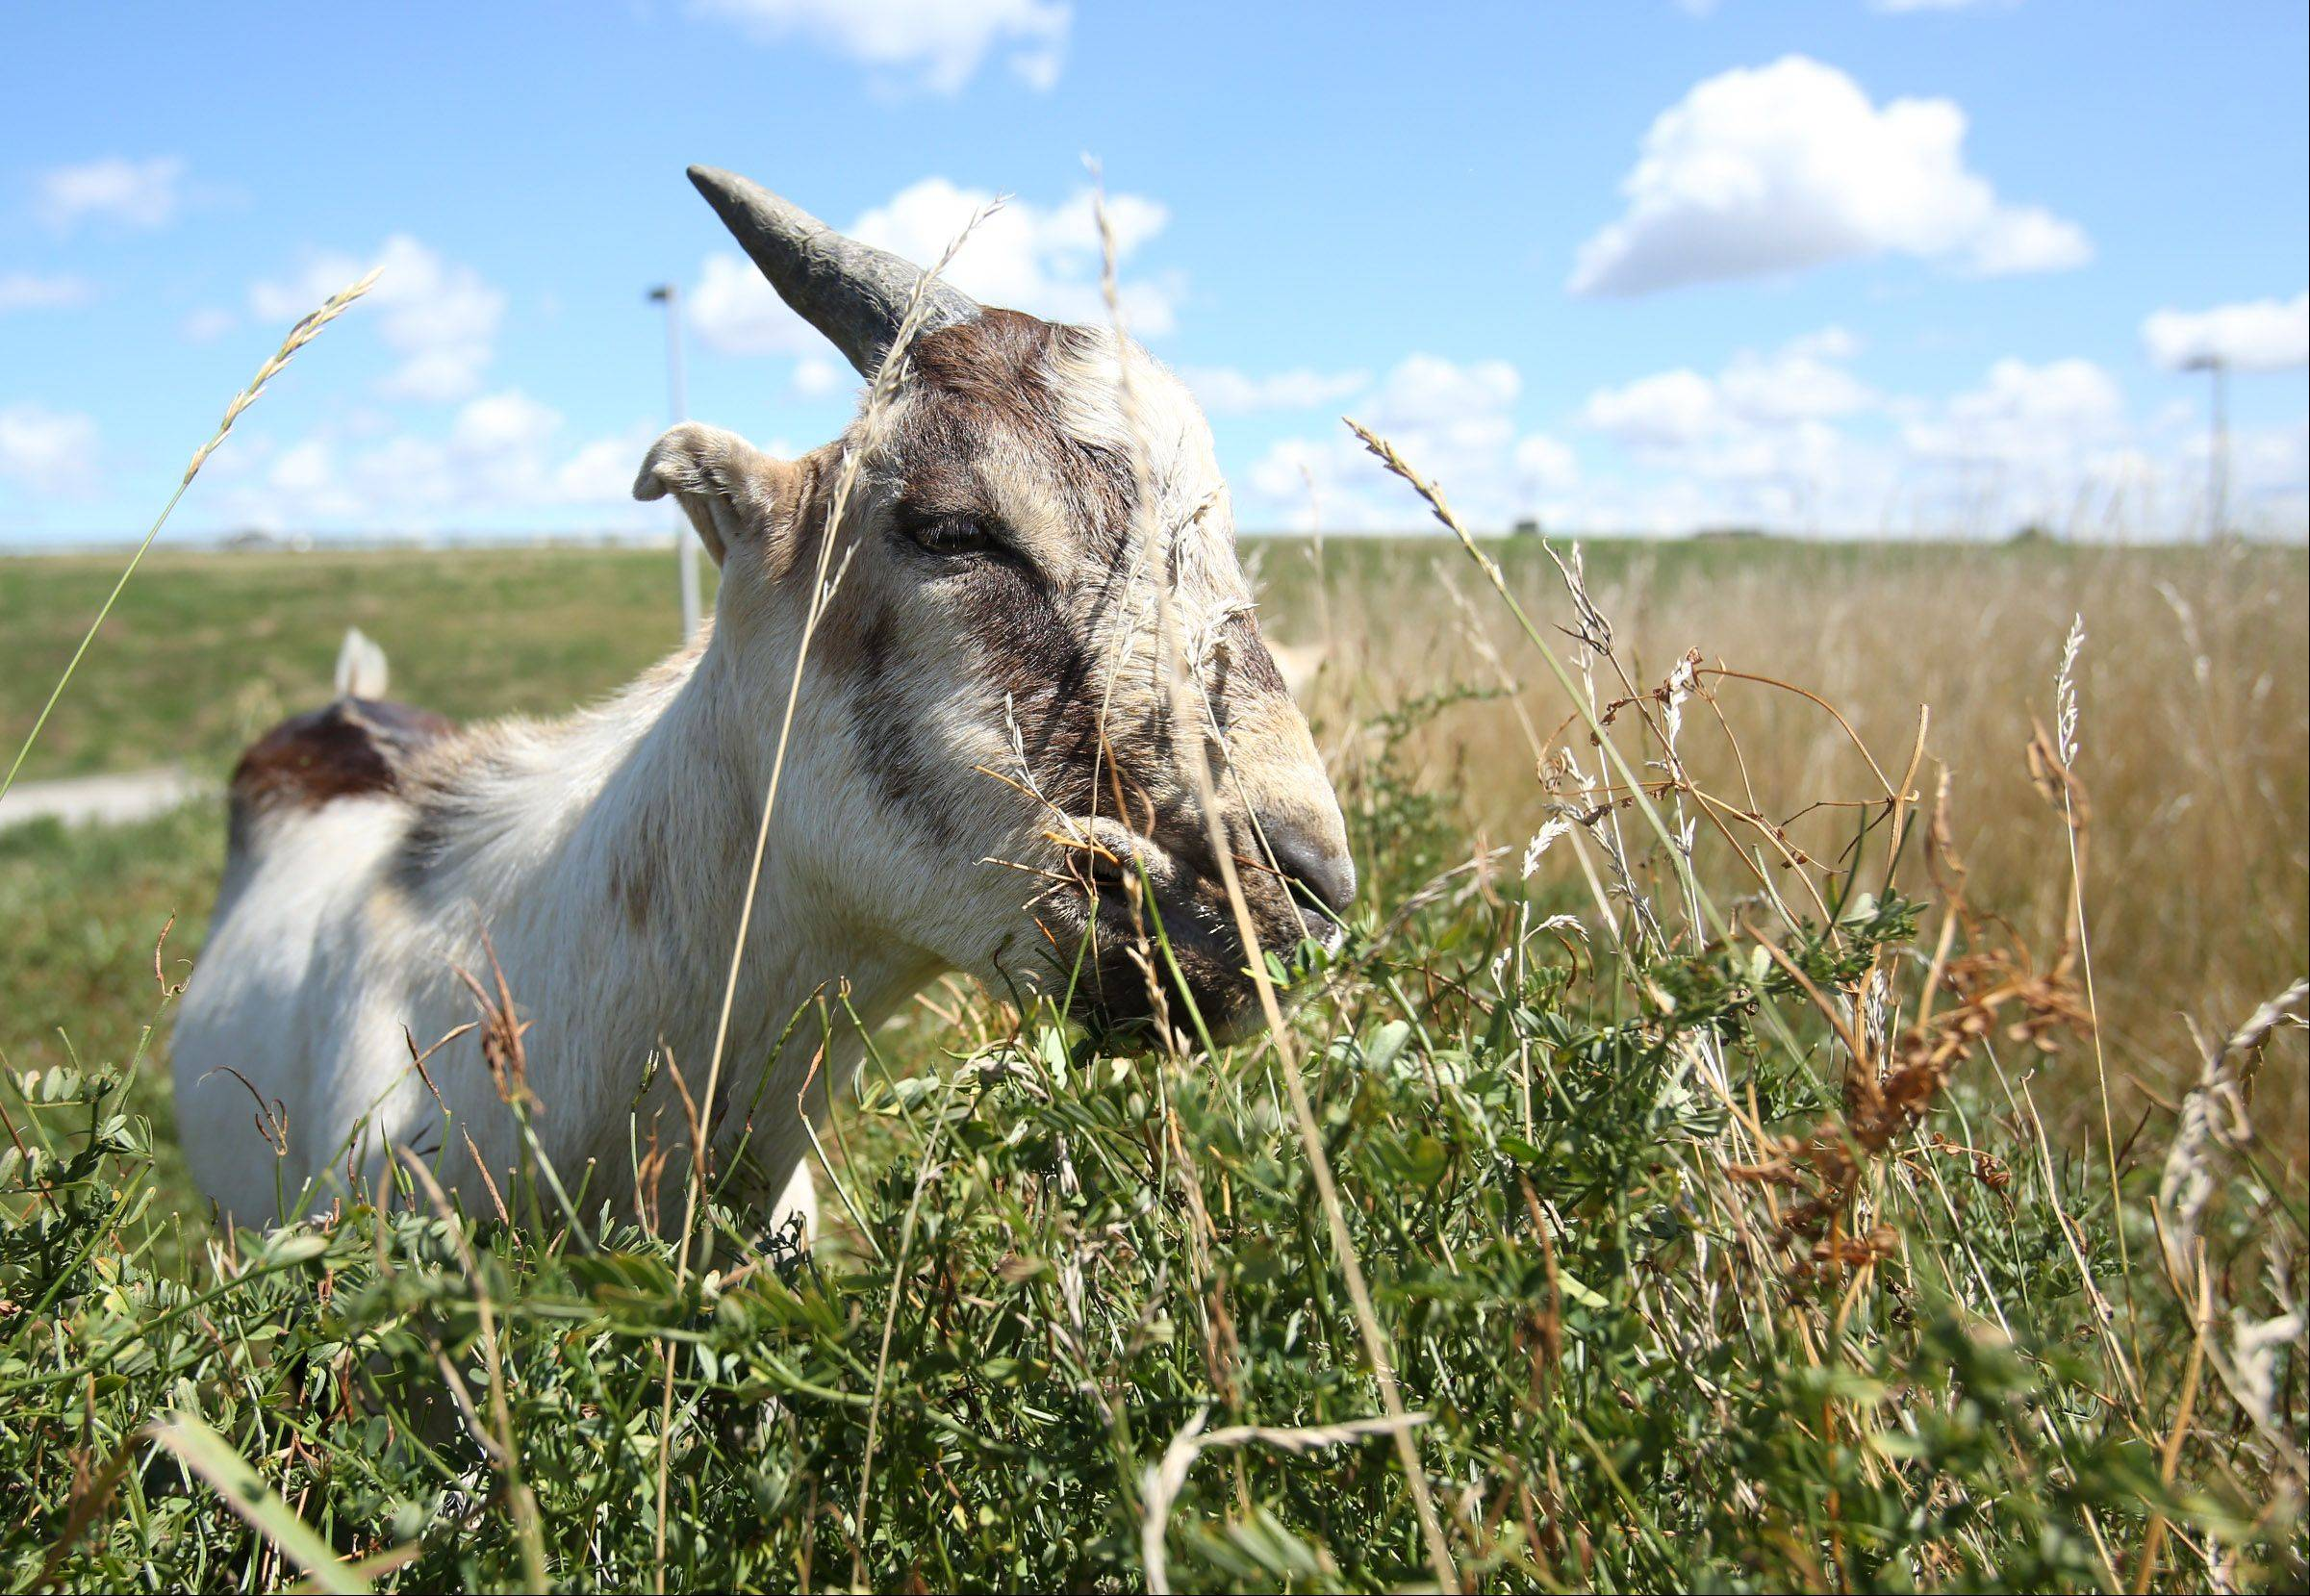 A goat grazes on grass at the northeast corner of O'Hare International Airport in Chicago last August.